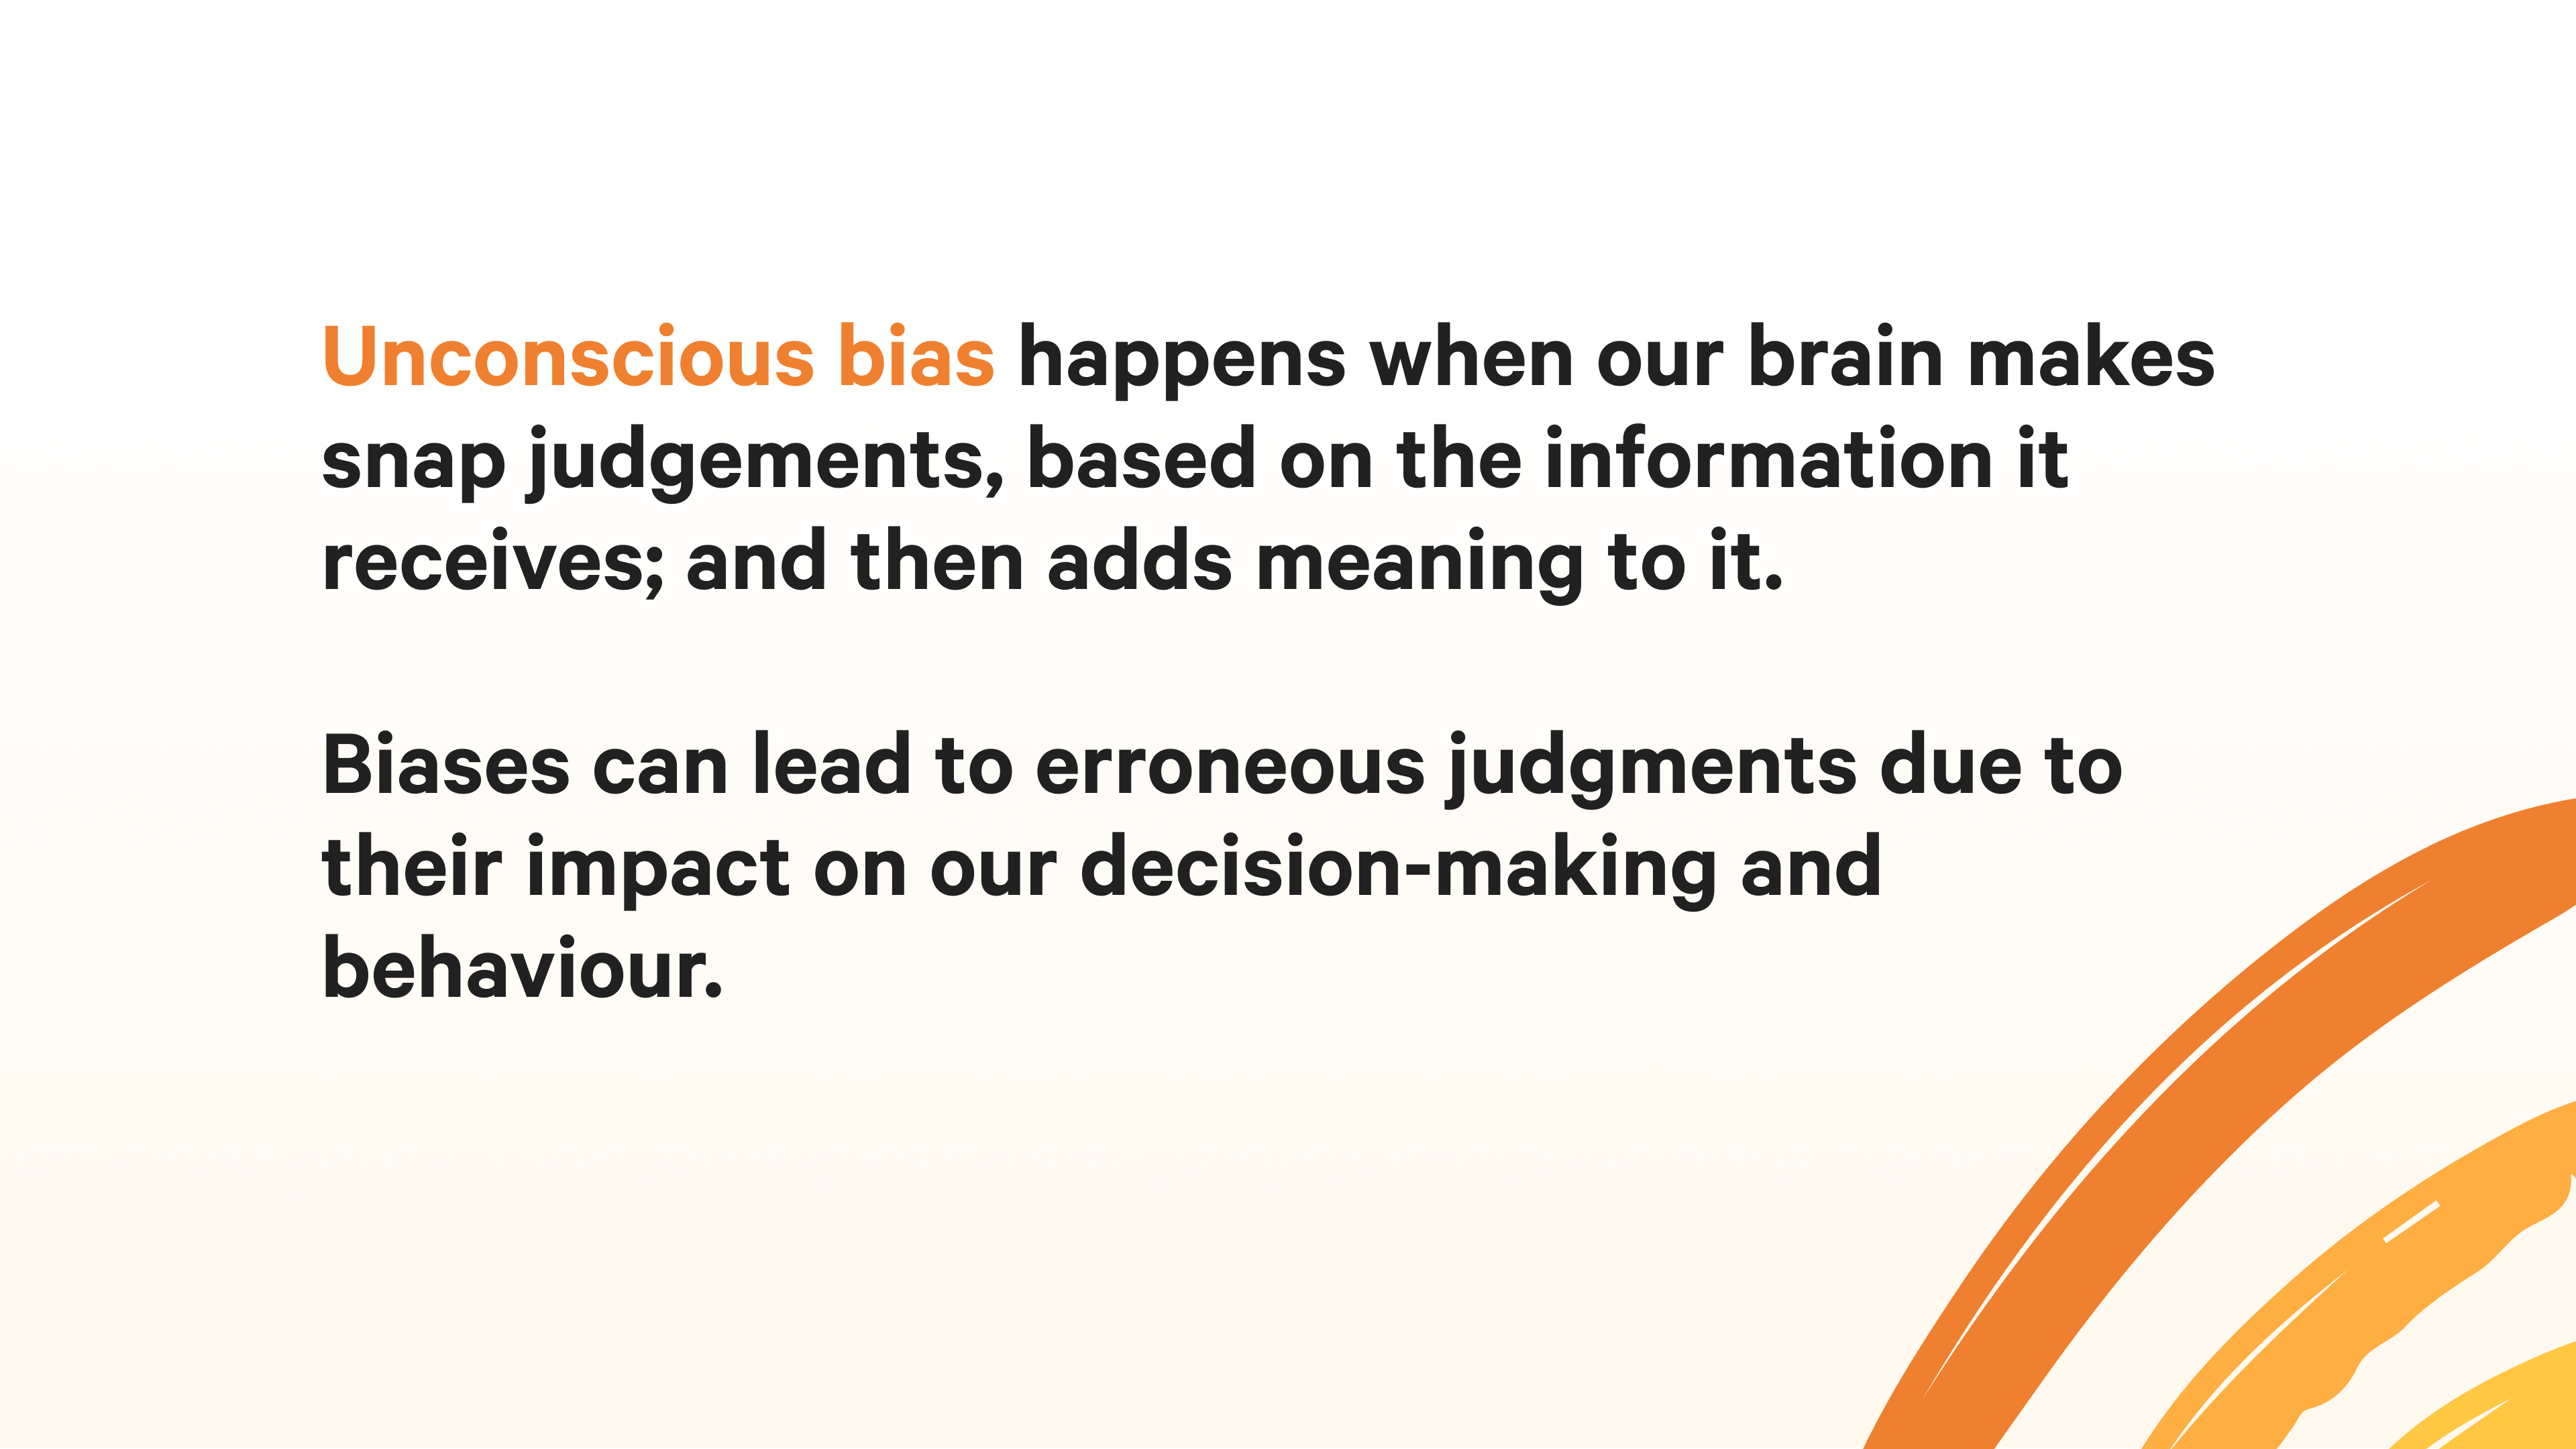 Unconscious bias happens when our brain makes snap judgements, based on the information it receives; and then adds meaning to it. Biases can lead to erroneous judgments due to their impact on our decision-making and behaviour.